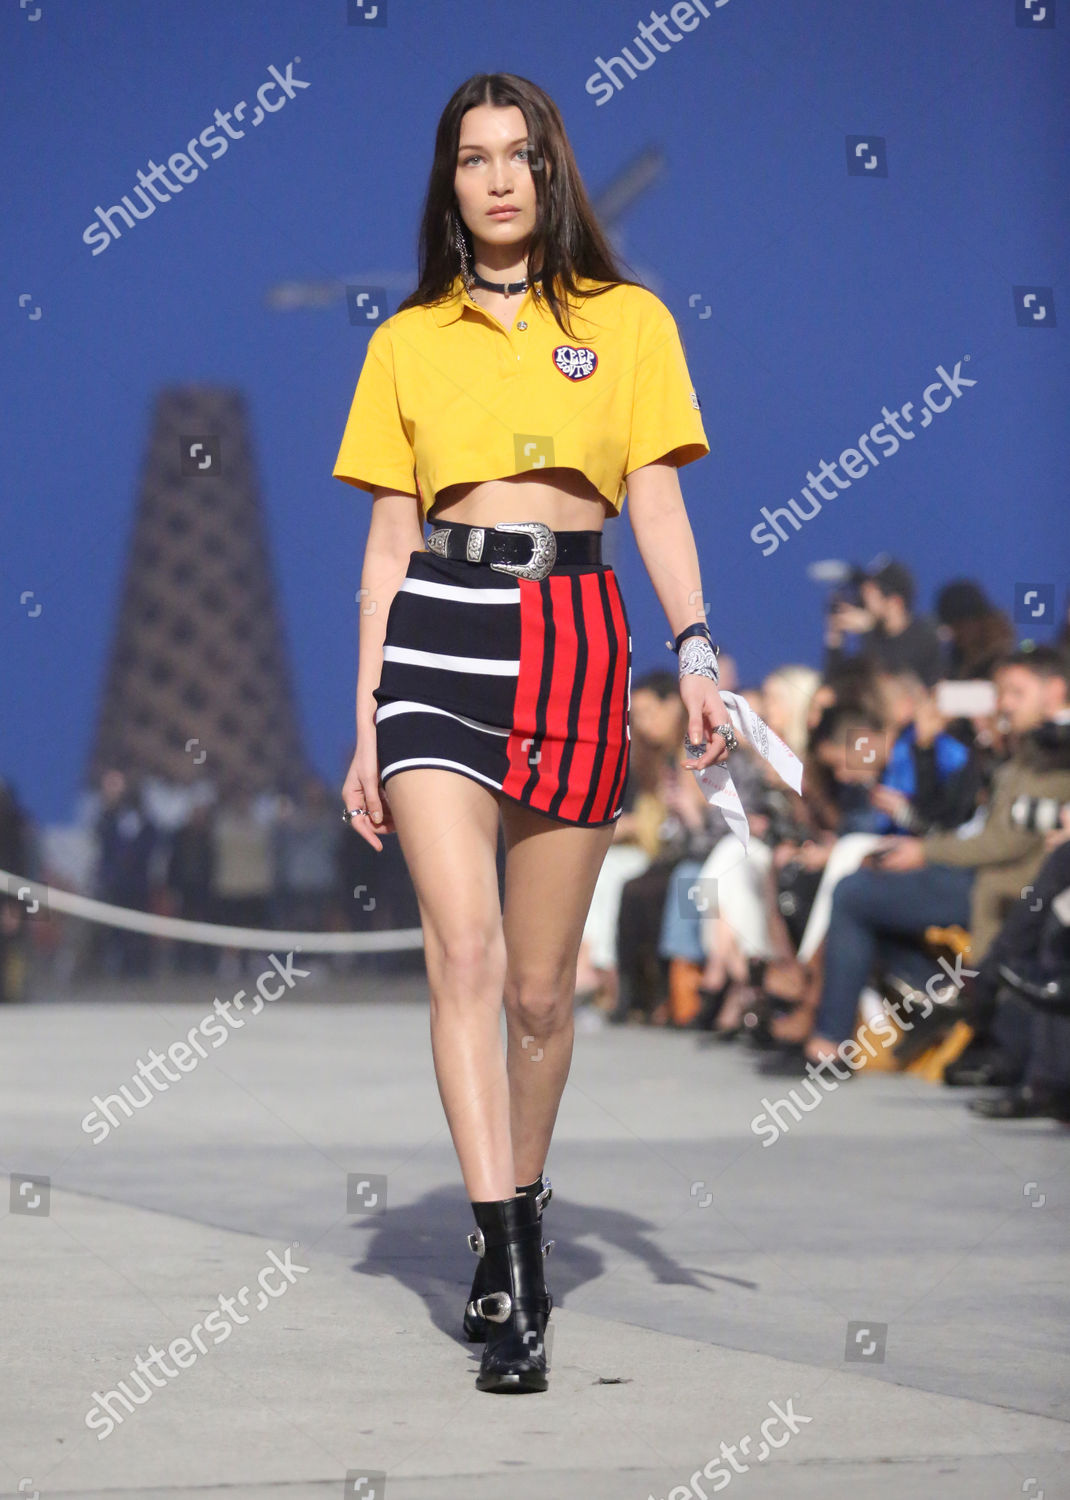 df6b6fbf4550 Stock photo of Tommy Hilfiger Spring 2017 Women s Collection featuring the TommyxGigi  Collection